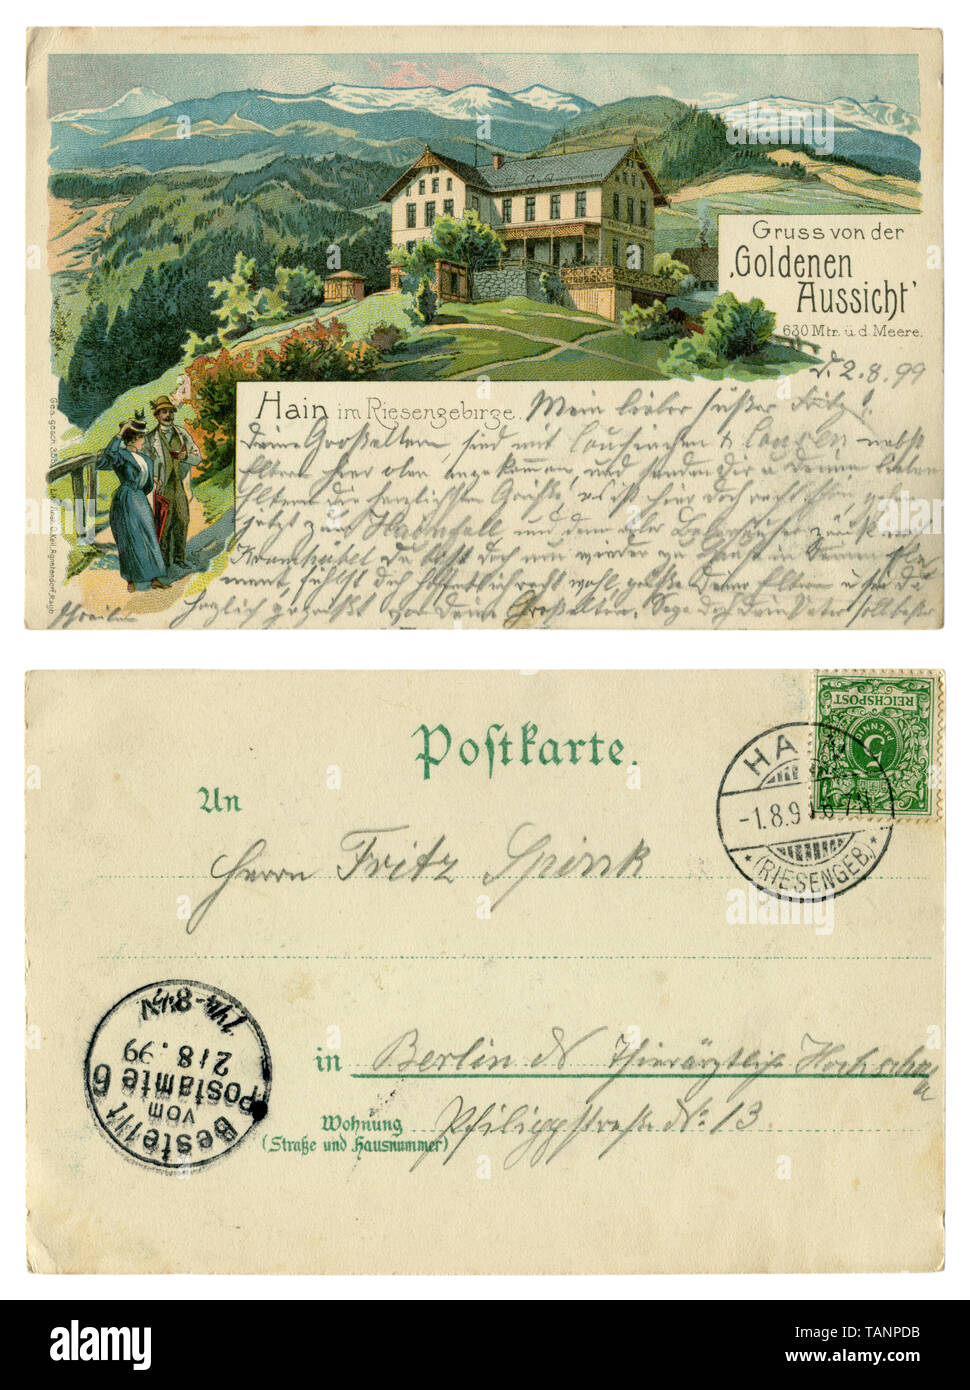 German historical advertising chromolithographic postcard: Mountain landscape with hotel 'Goldenen Aussicht'. Tourists guest house. Back side, 1899 - Stock Image